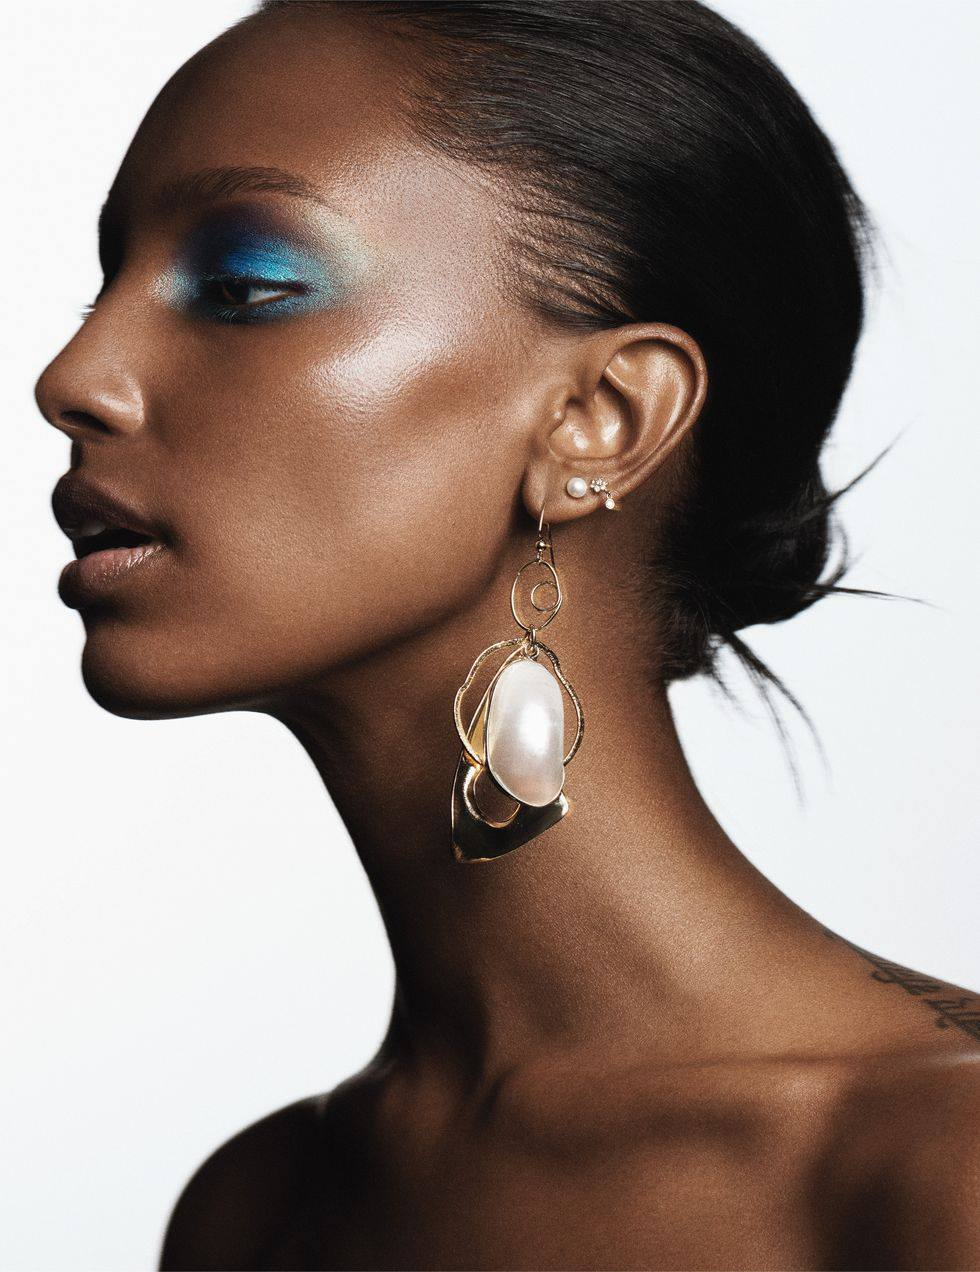 Elle US May 2018 Jasmine Tookes by Tom Schirmacher